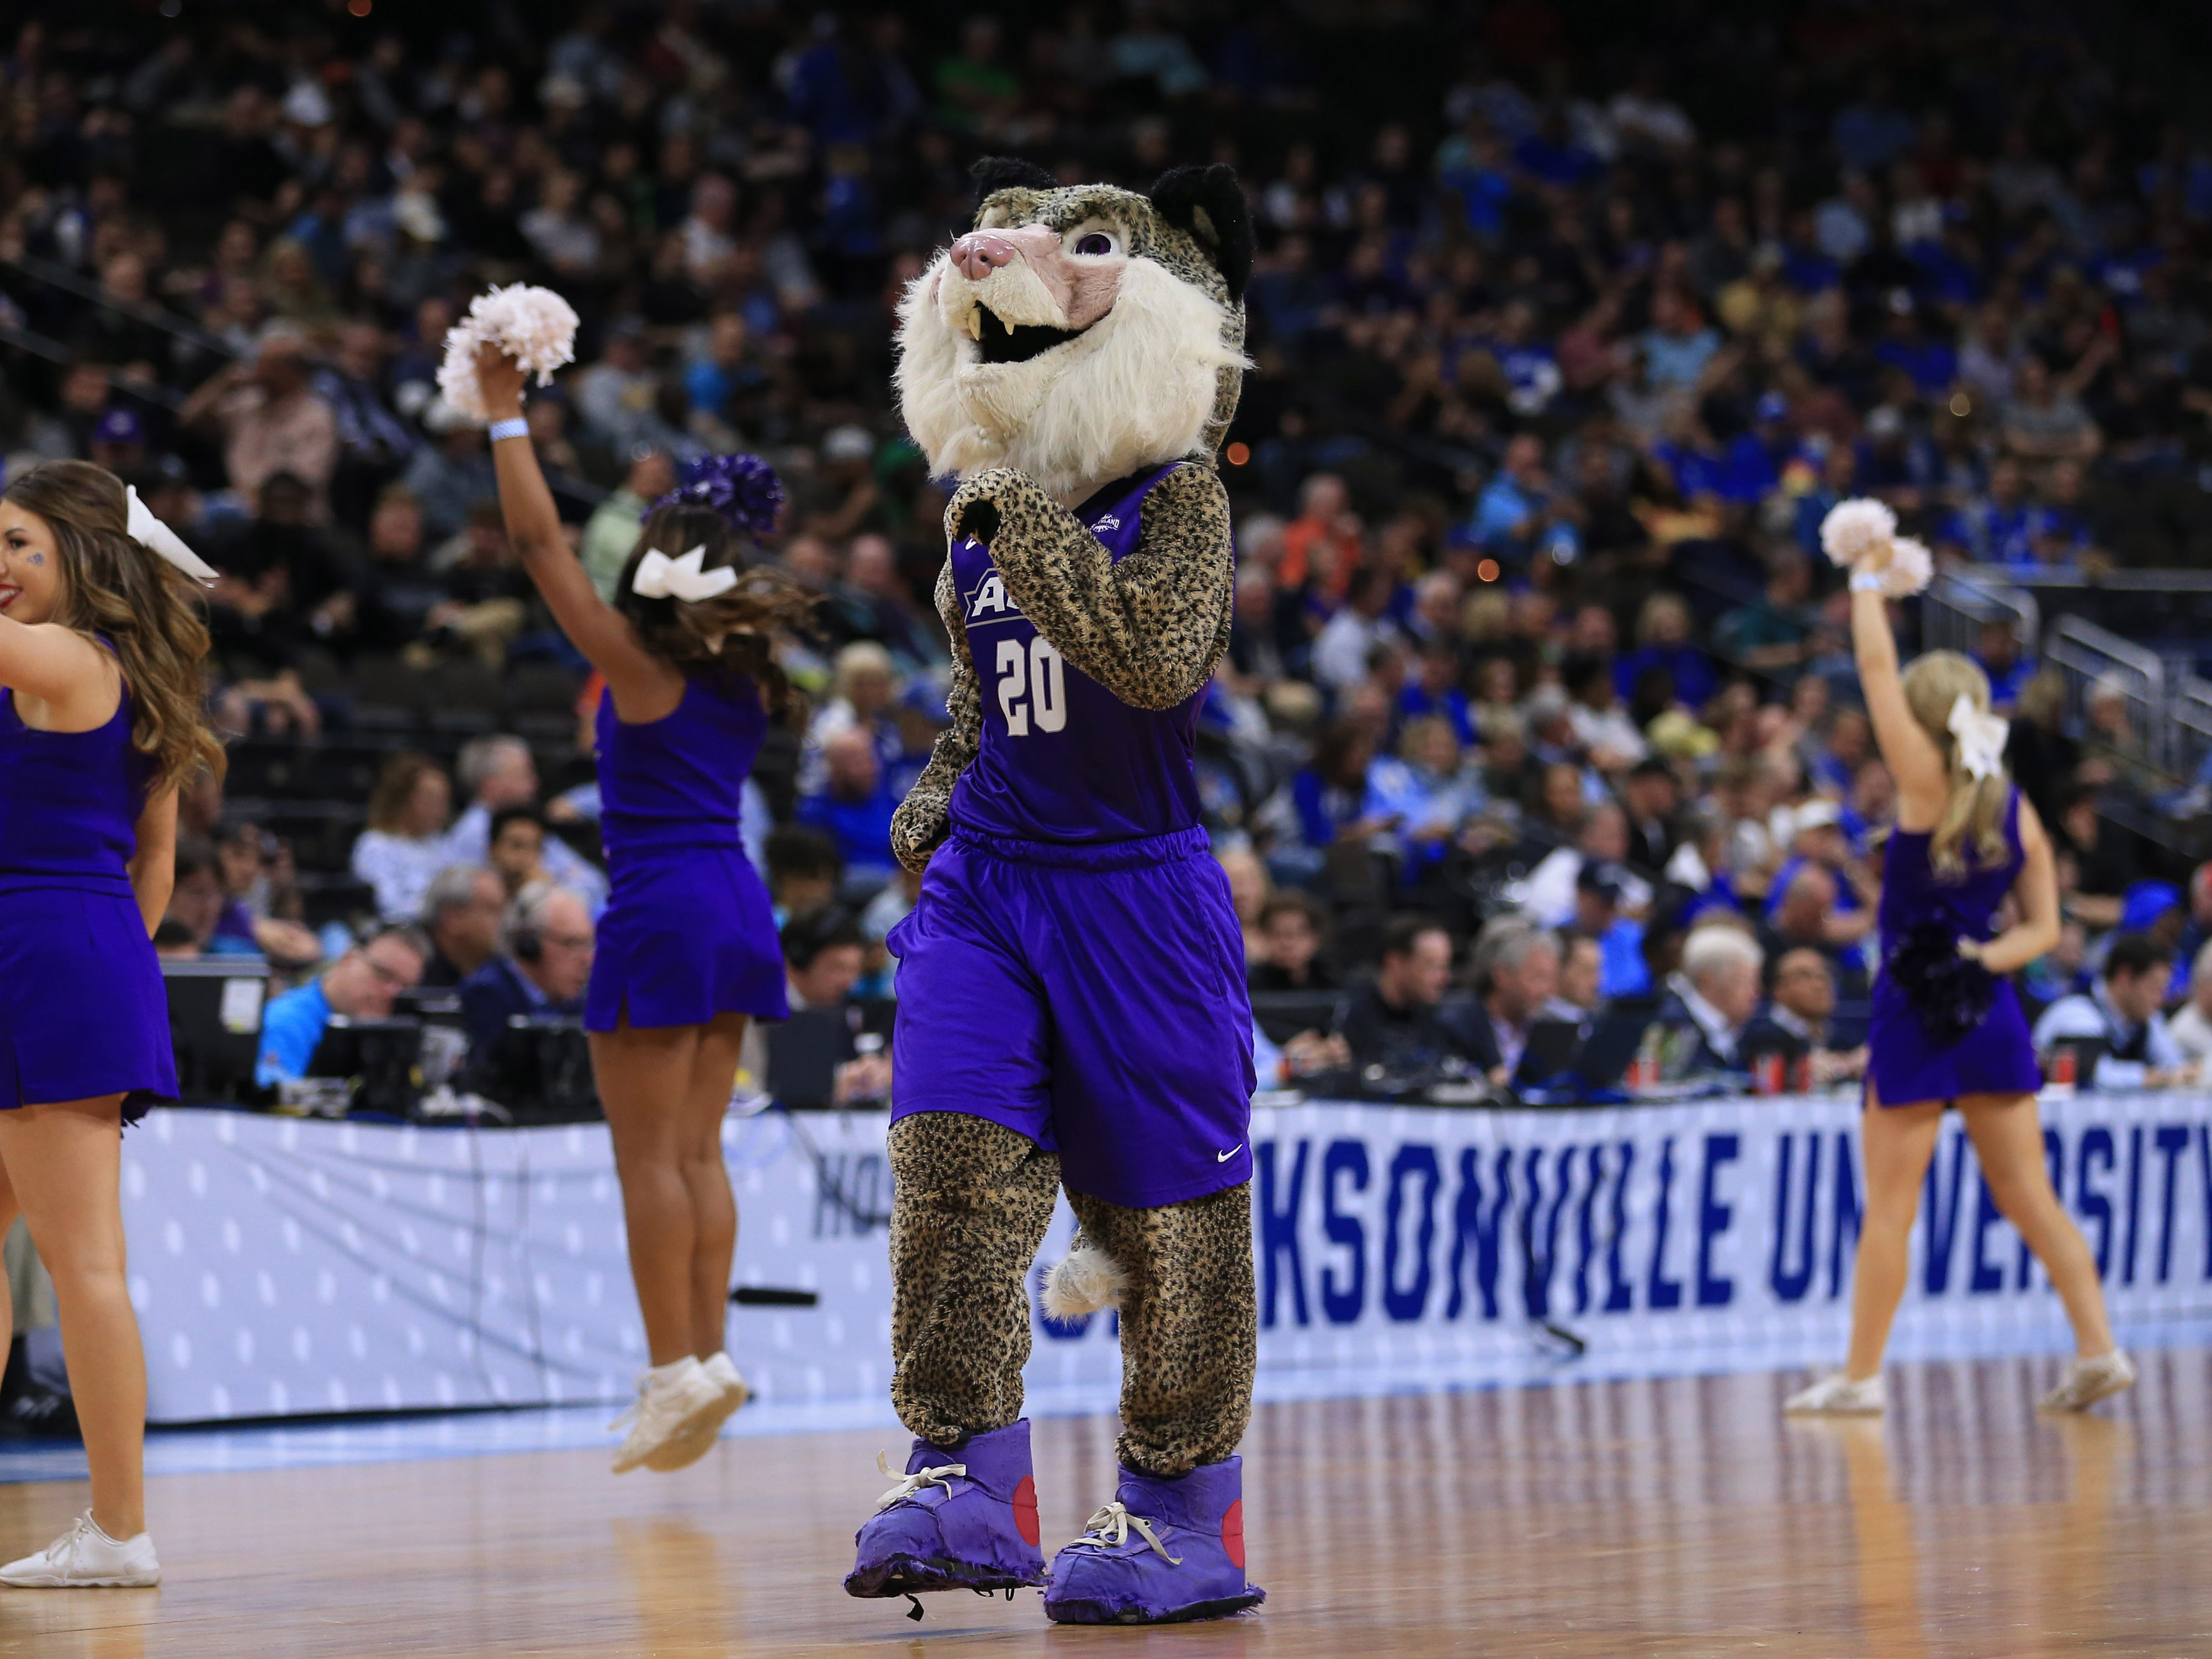 The Abilene Christian Wildcats mascot ... we're not sure what's going on here.